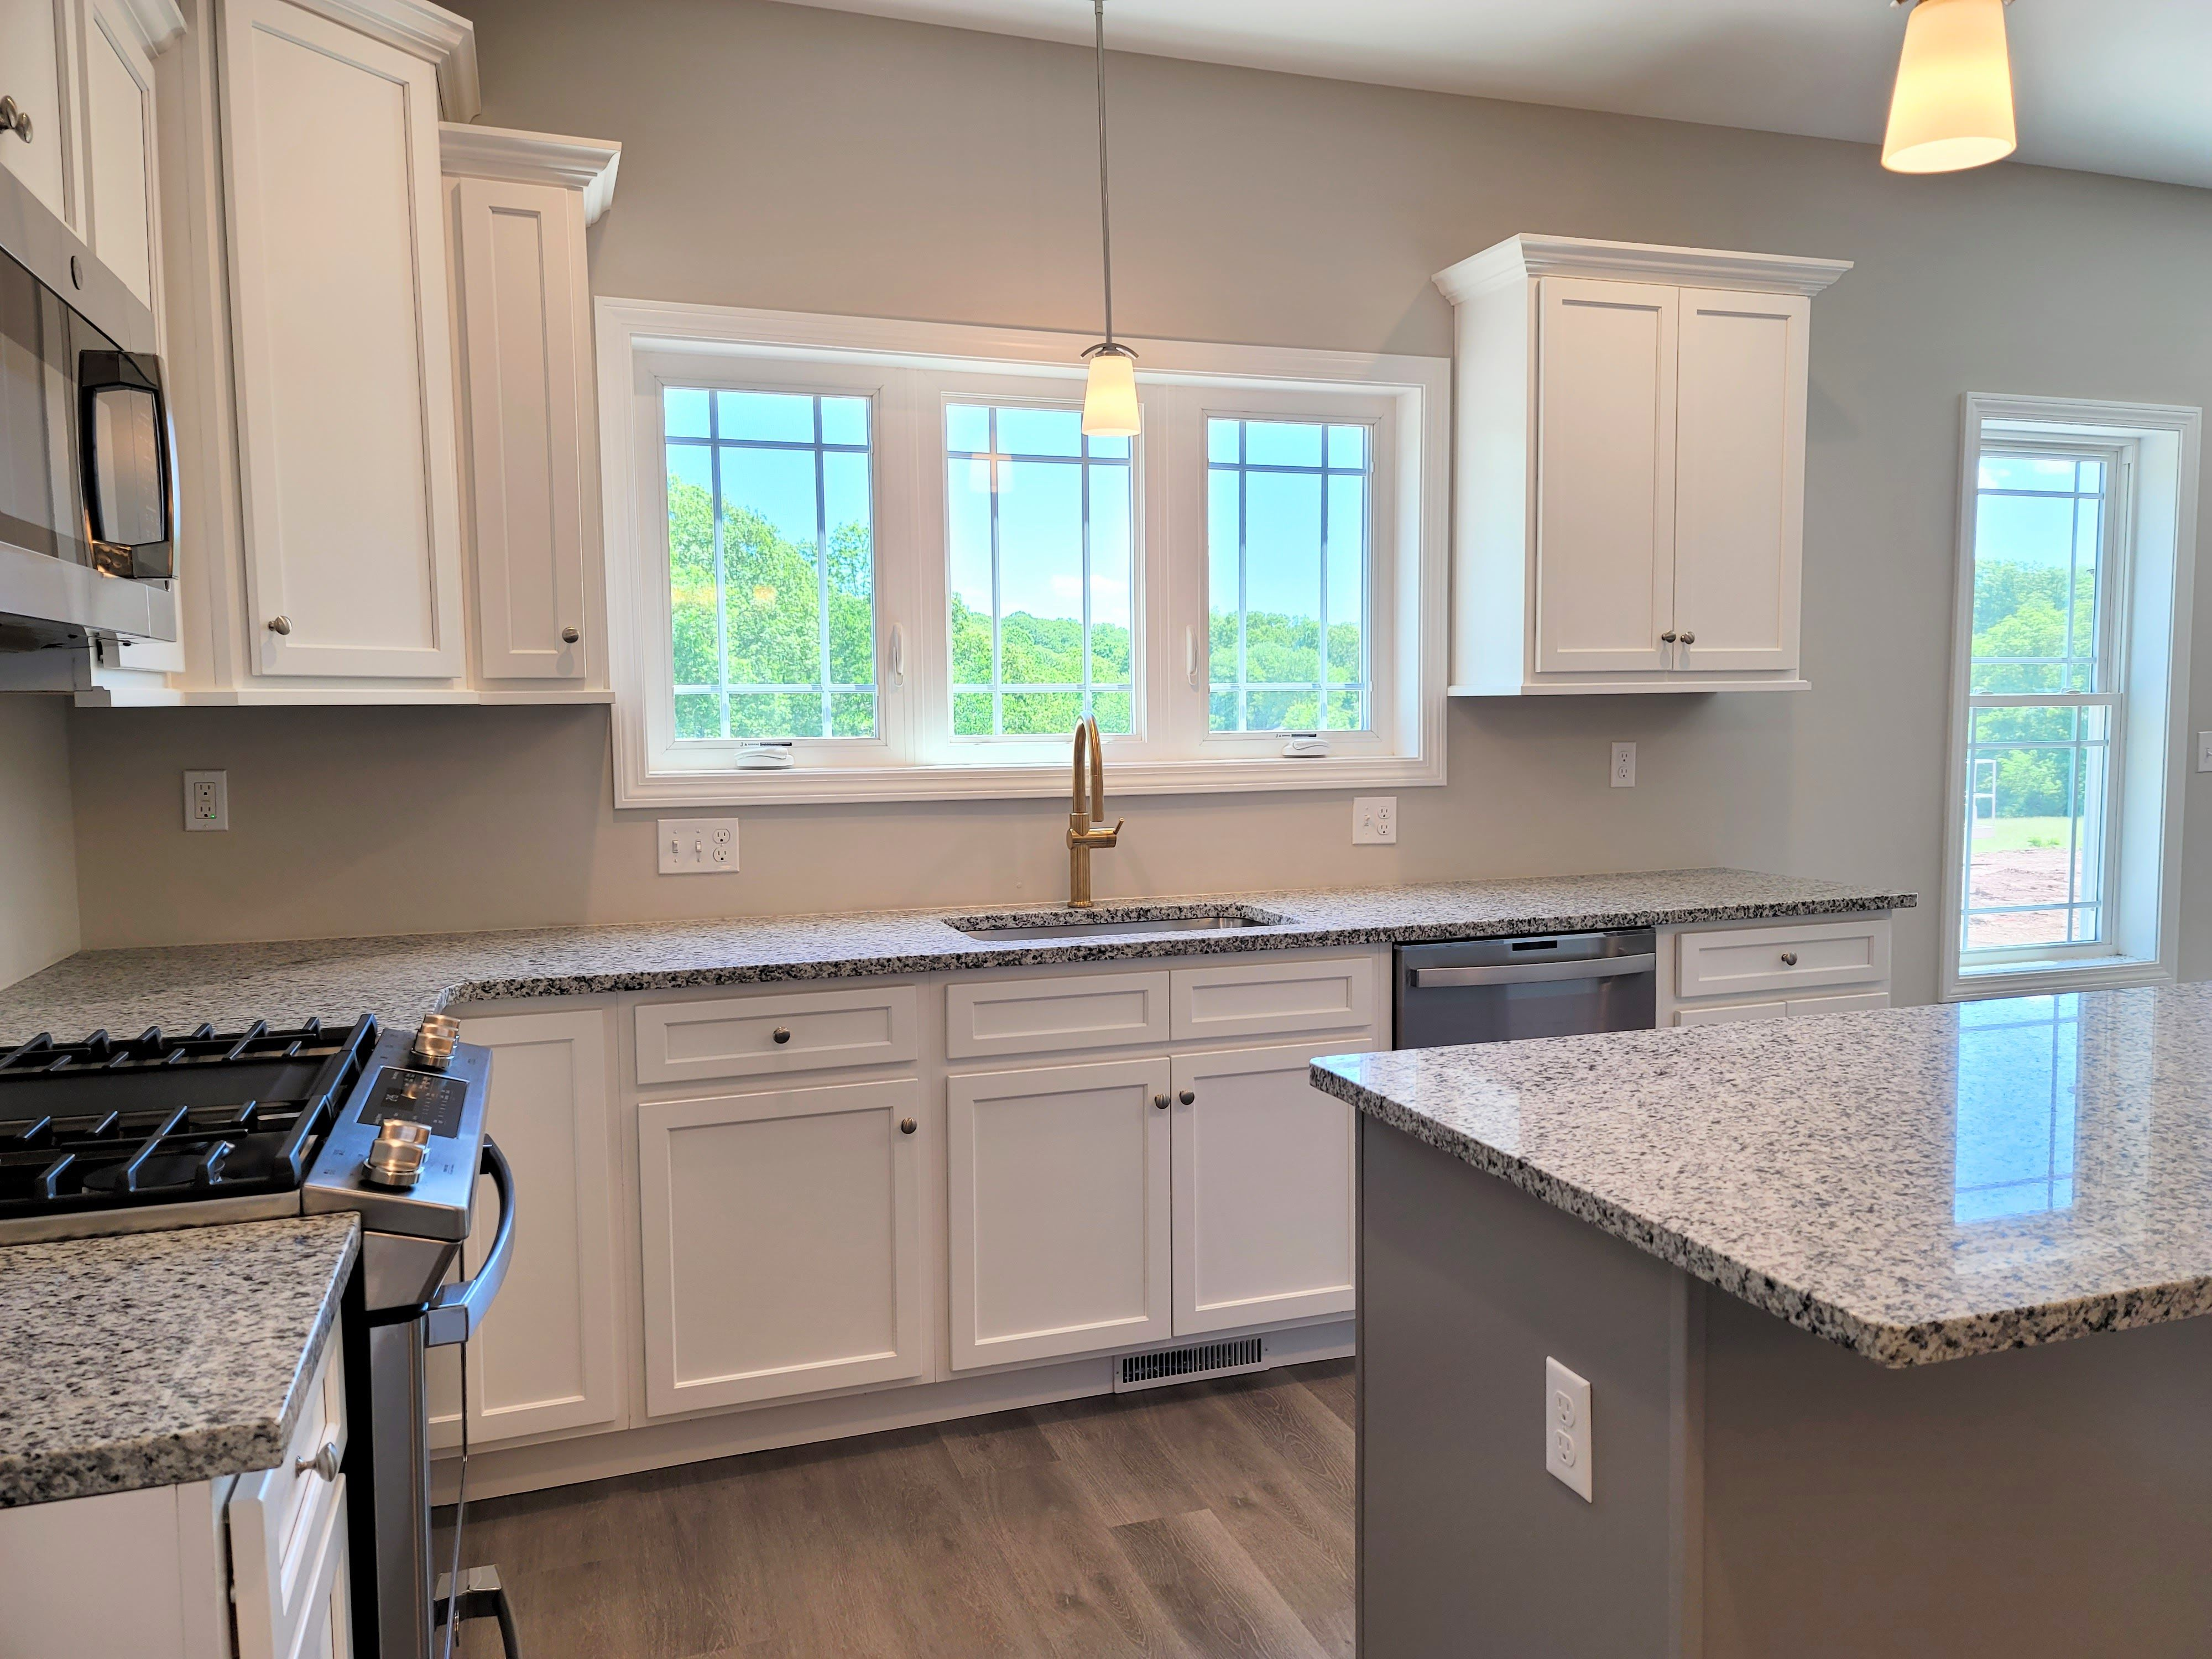 Kitchen featured in The Patton 4 Bedroom By Calcagni Real Estate in New Haven-Meriden, CT